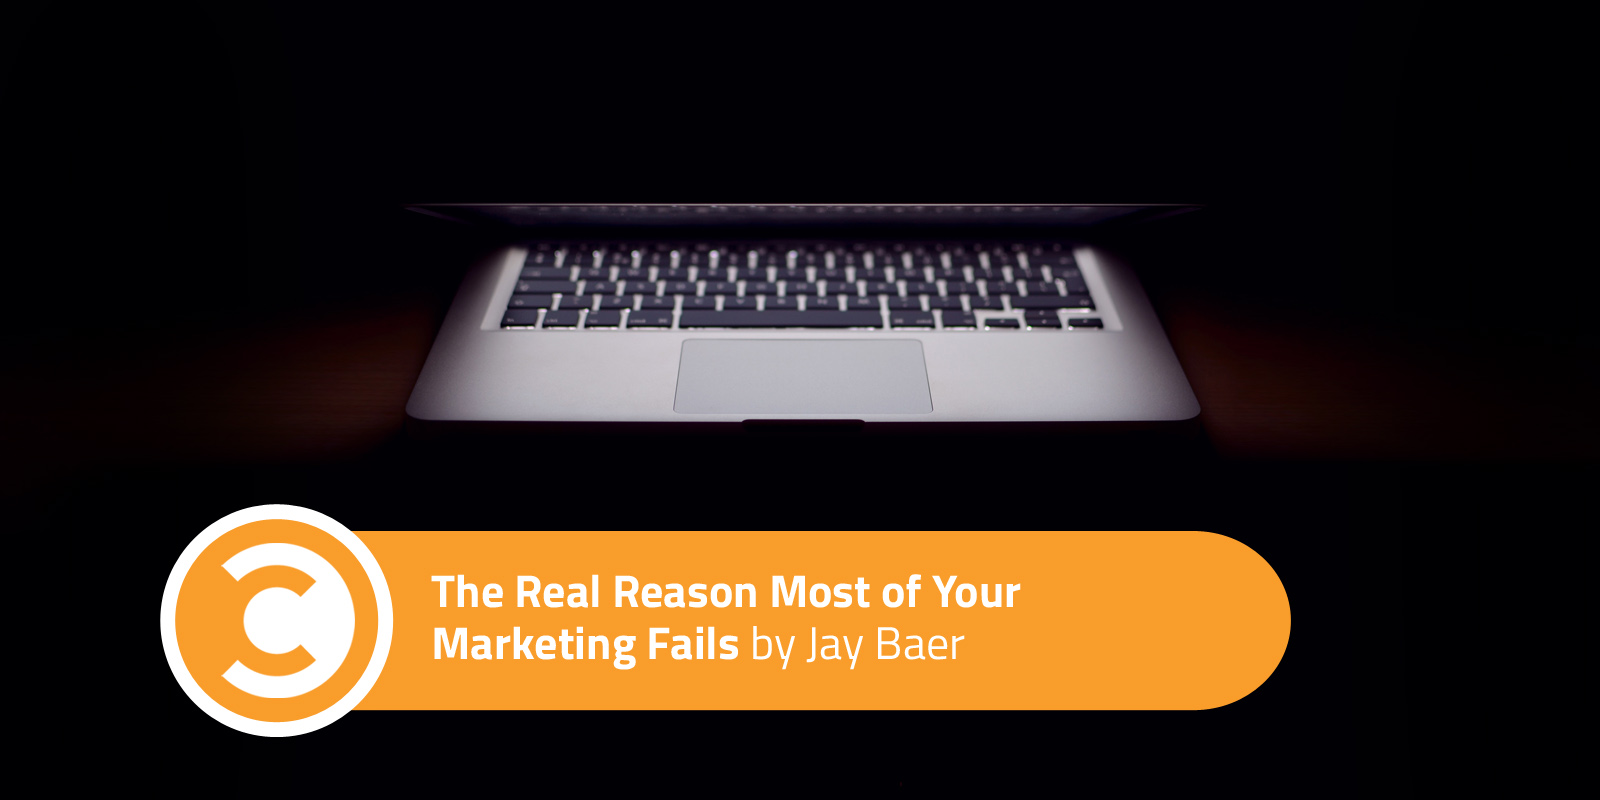 The Real Reason Most of Your Marketing Fails